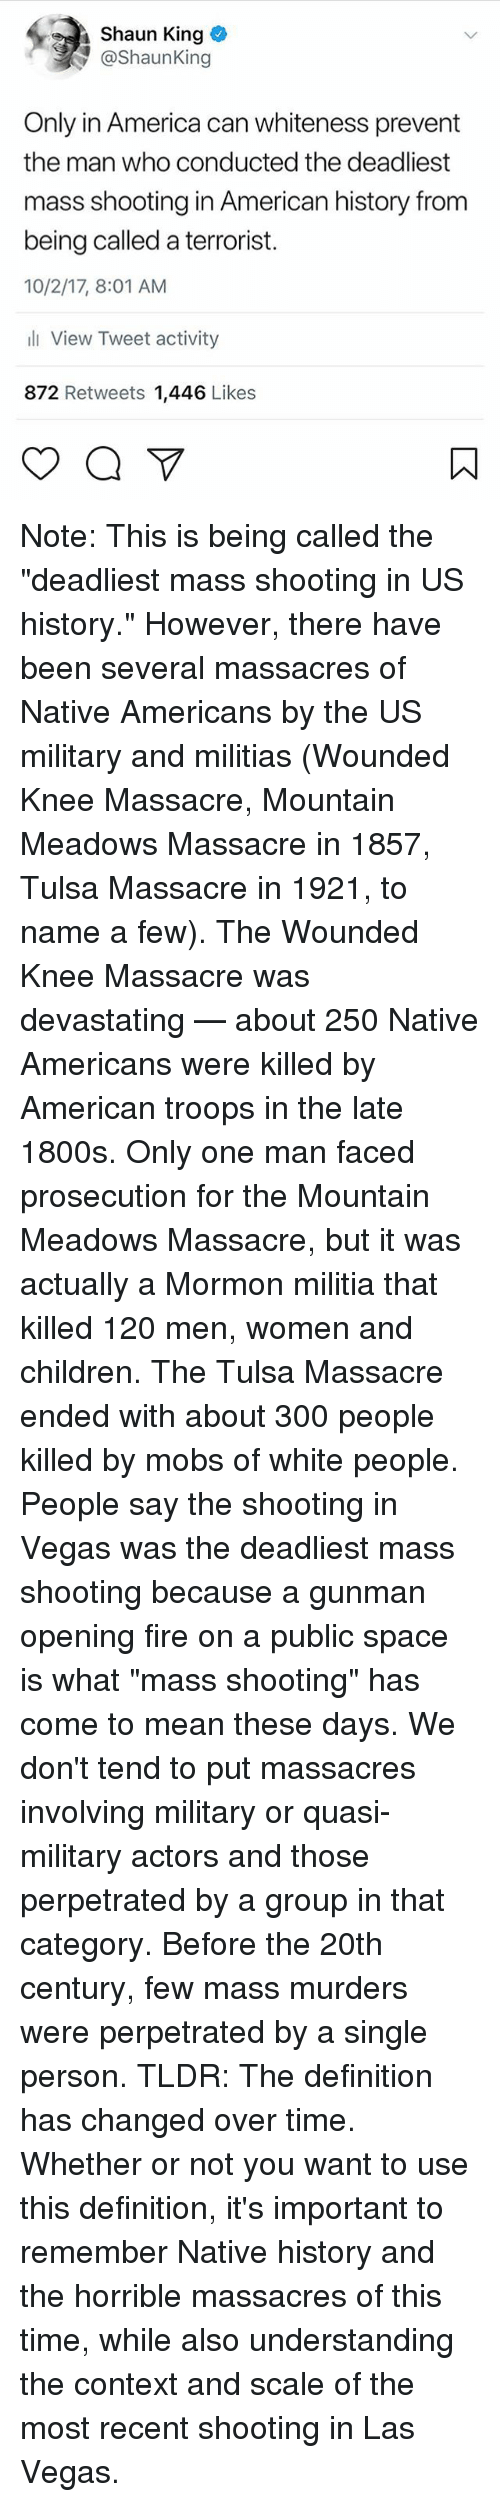 "mobs: Shaun King  @ShaunKing  Only in America can whiteness prevent  the man who conducted the deadliest  mass shooting in American history from  being called a terrorist.  10/2/17, 8:01 AM  li View Tweet activity  872 Retweets 1,446 Likes Note: This is being called the ""deadliest mass shooting in US history."" However, there have been several massacres of Native Americans by the US military and militias (Wounded Knee Massacre, Mountain Meadows Massacre in 1857, Tulsa Massacre in 1921, to name a few). The Wounded Knee Massacre was devastating — about 250 Native Americans were killed by American troops in the late 1800s. Only one man faced prosecution for the Mountain Meadows Massacre, but it was actually a Mormon militia that killed 120 men, women and children. The Tulsa Massacre ended with about 300 people killed by mobs of white people. People say the shooting in Vegas was the deadliest mass shooting because a gunman opening fire on a public space is what ""mass shooting"" has come to mean these days. We don't tend to put massacres involving military or quasi-military actors and those perpetrated by a group in that category. Before the 20th century, few mass murders were perpetrated by a single person. TLDR: The definition has changed over time. Whether or not you want to use this definition, it's important to remember Native history and the horrible massacres of this time, while also understanding the context and scale of the most recent shooting in Las Vegas."